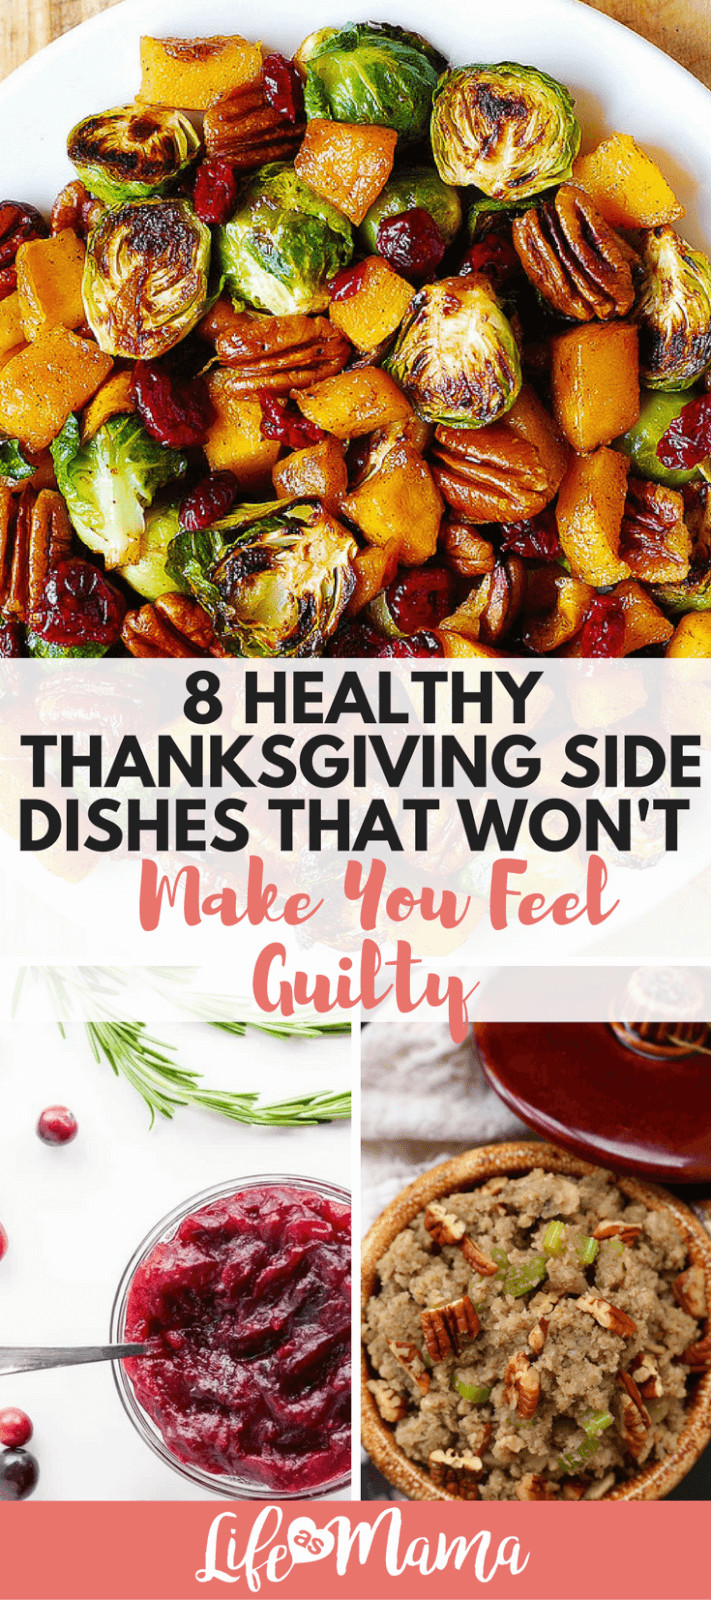 Healthy Side Dishes For Thanksgiving  8 Healthy Thanksgiving Side Dishes That Won t Make You